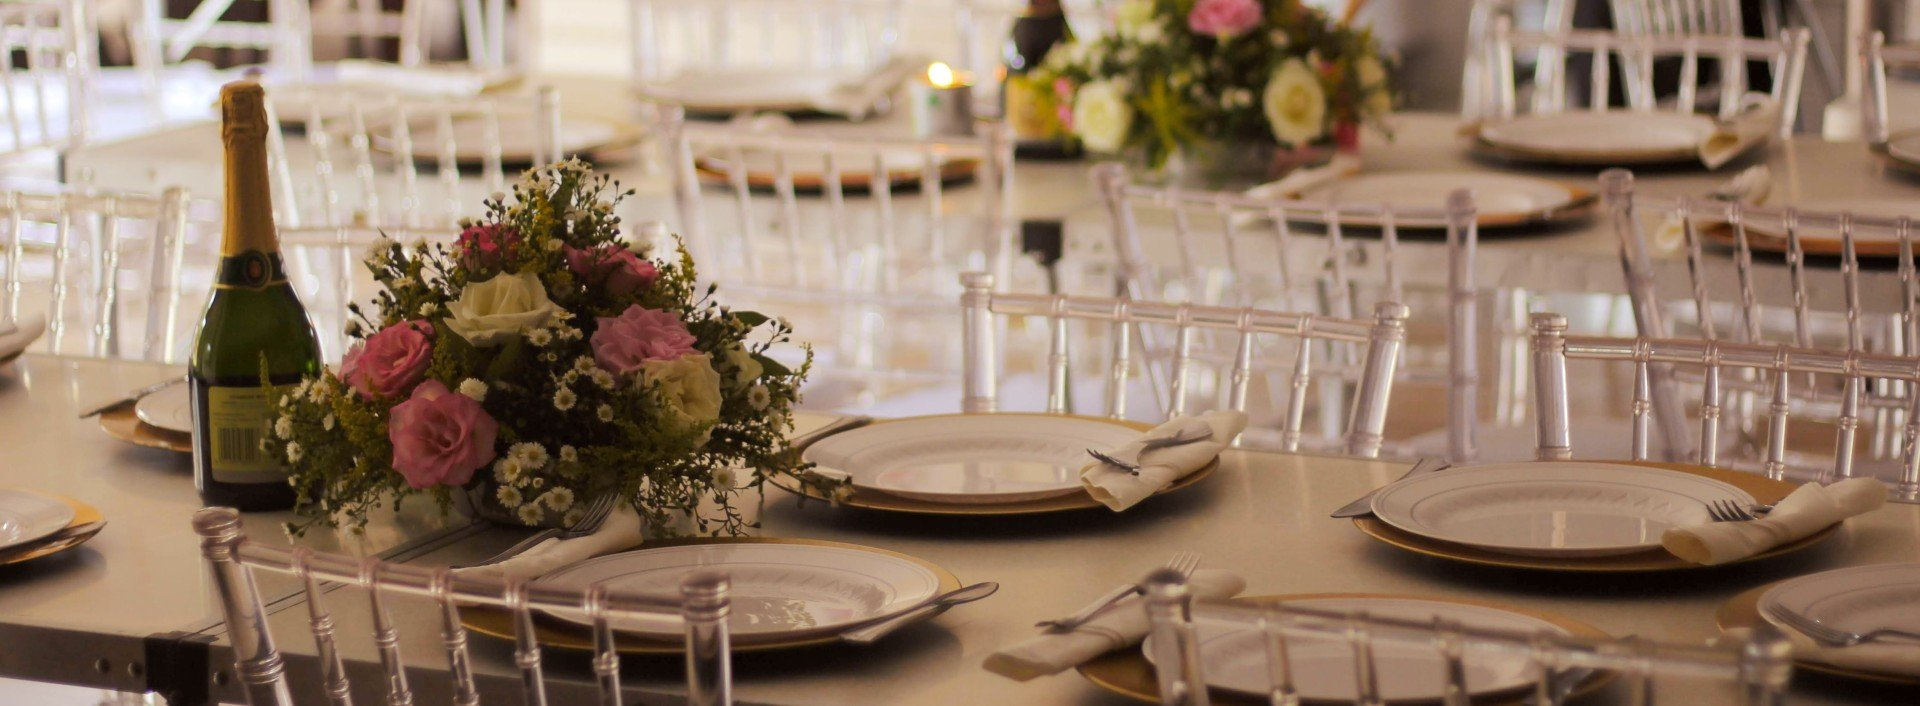 Table manners in English: a dinner table is set for a dinner party